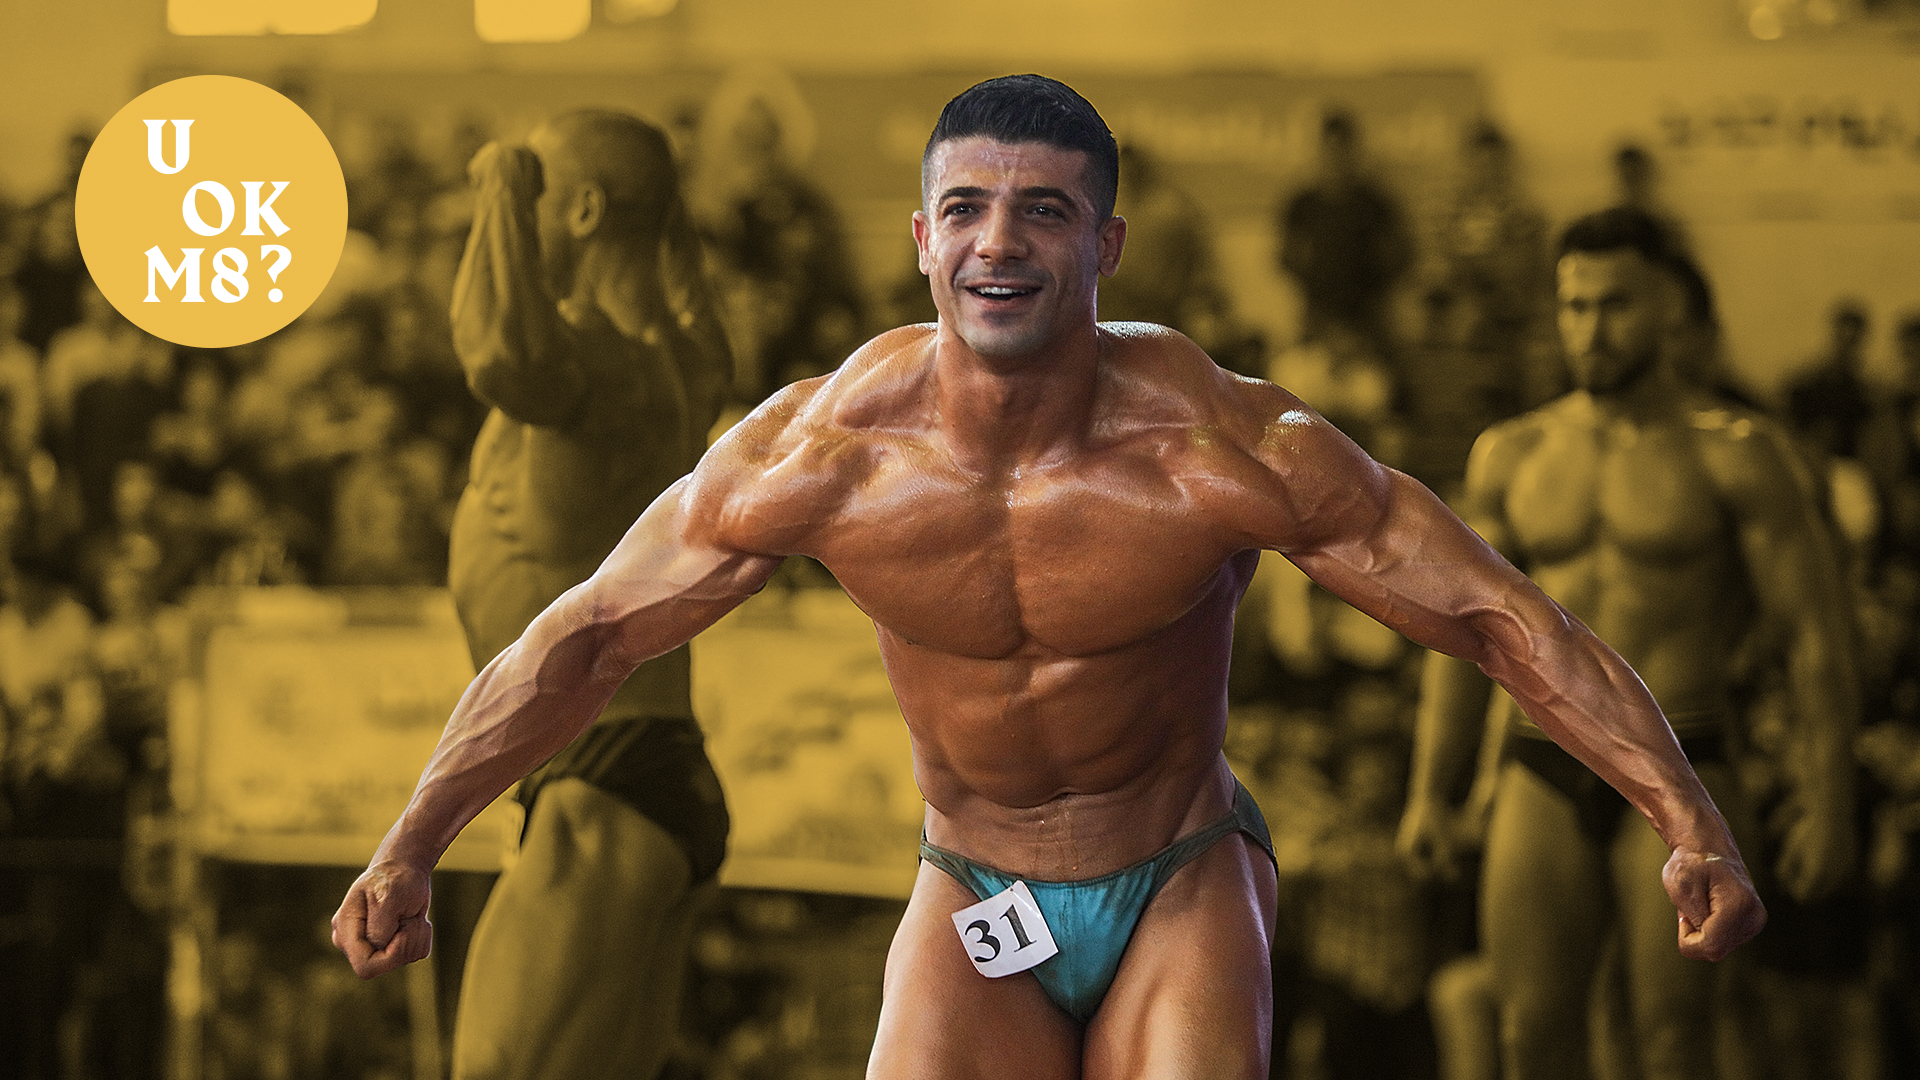 Bigorexia: How Muscle Dysmorphia Is Ruining Lads' Lives